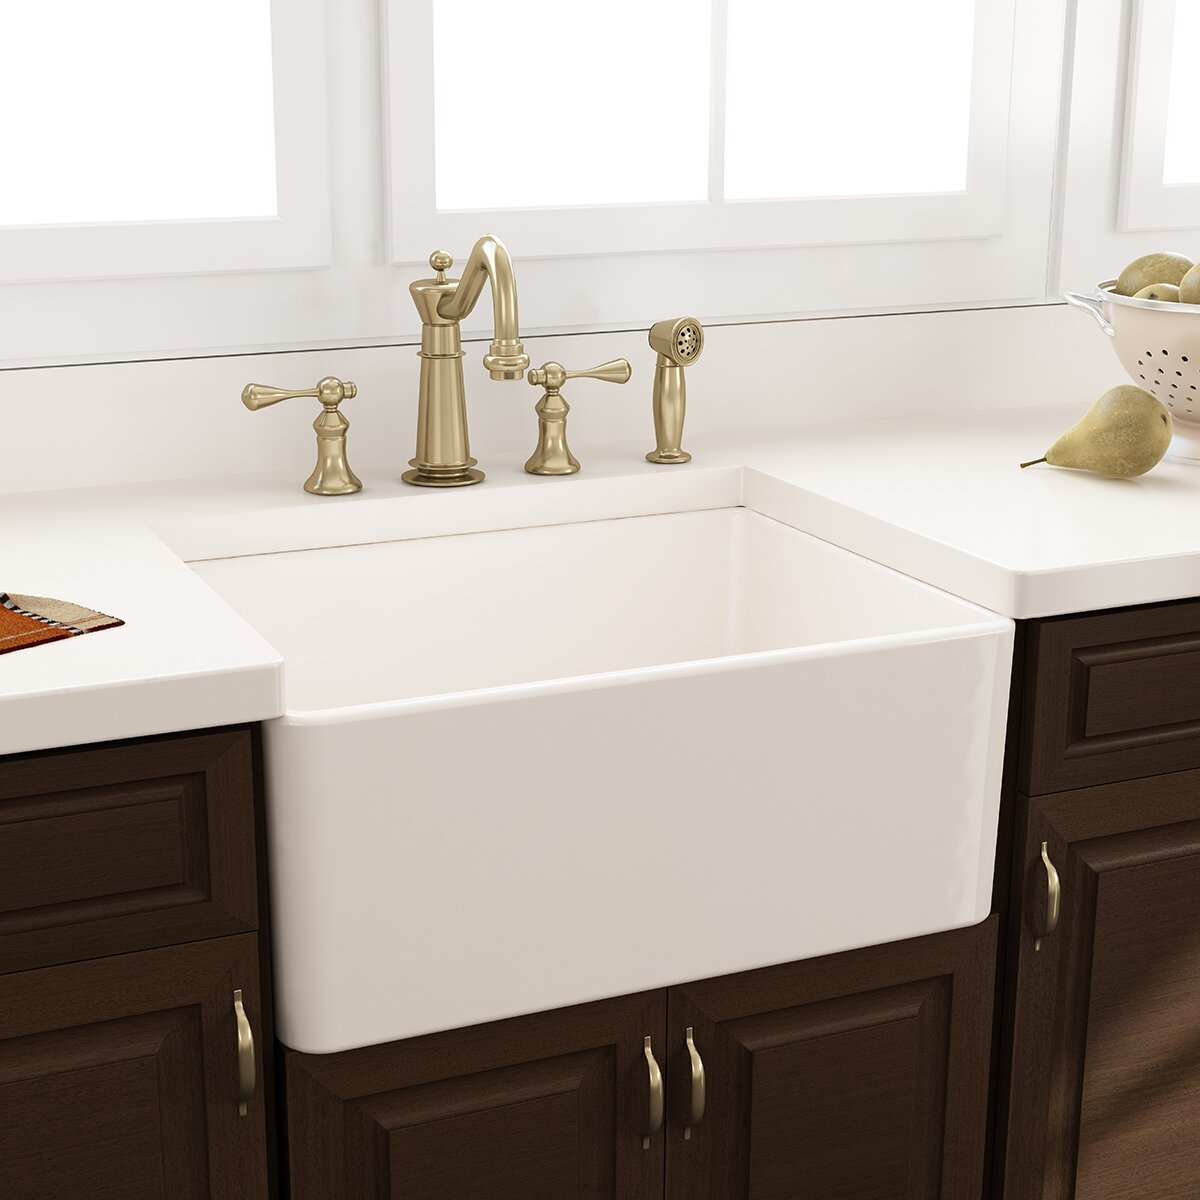 "Nantucket Sinks 24"" x 18"" Fireclay Farmhouse Kitchen Sink with Grid"